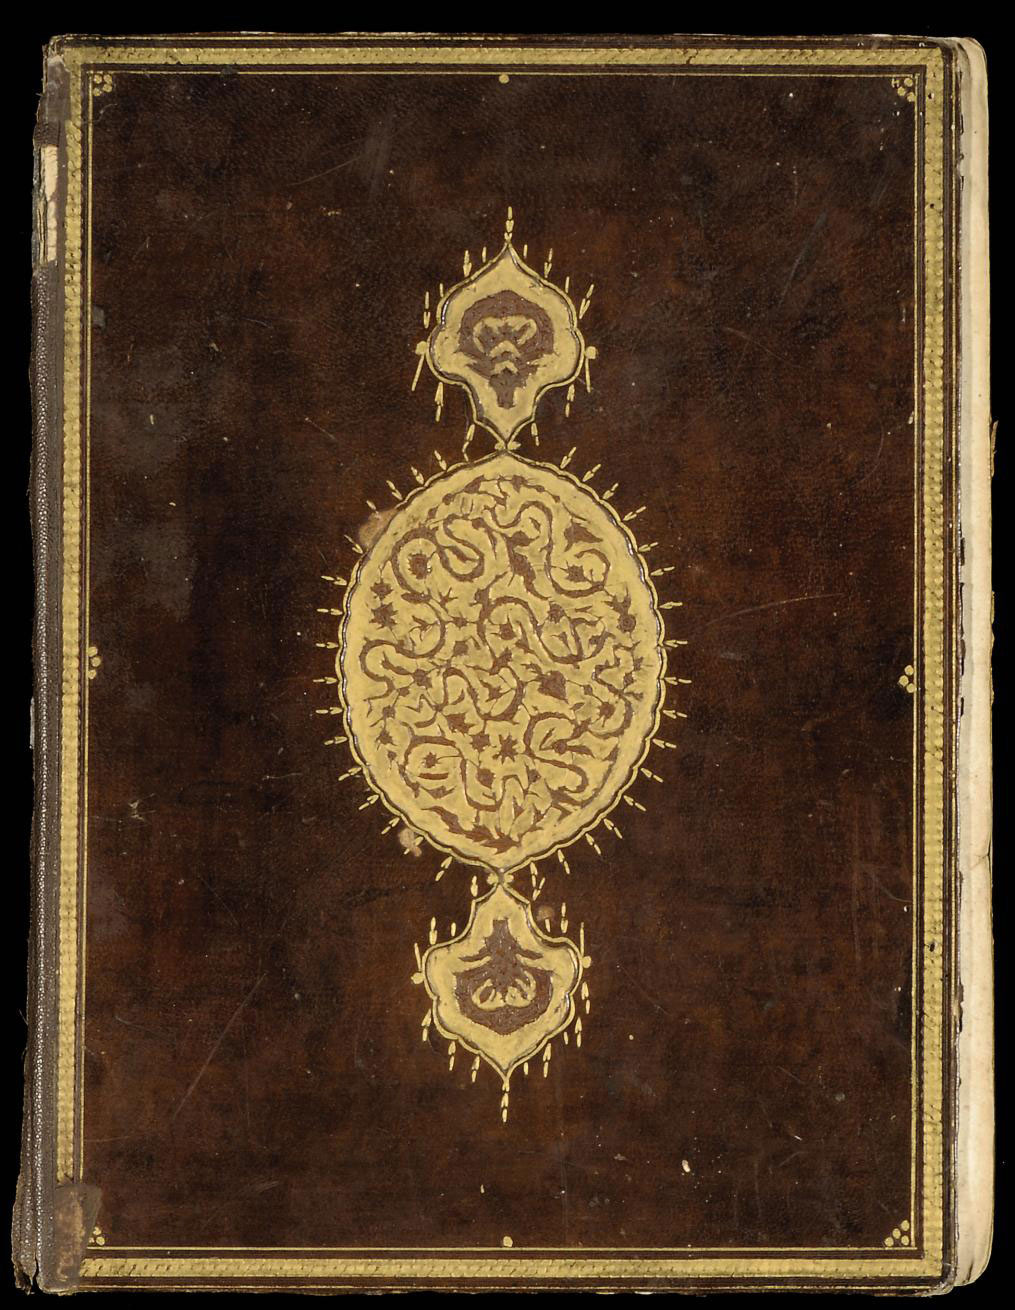 TWO OTTOMAN CALLIGRAPHY EXCERC